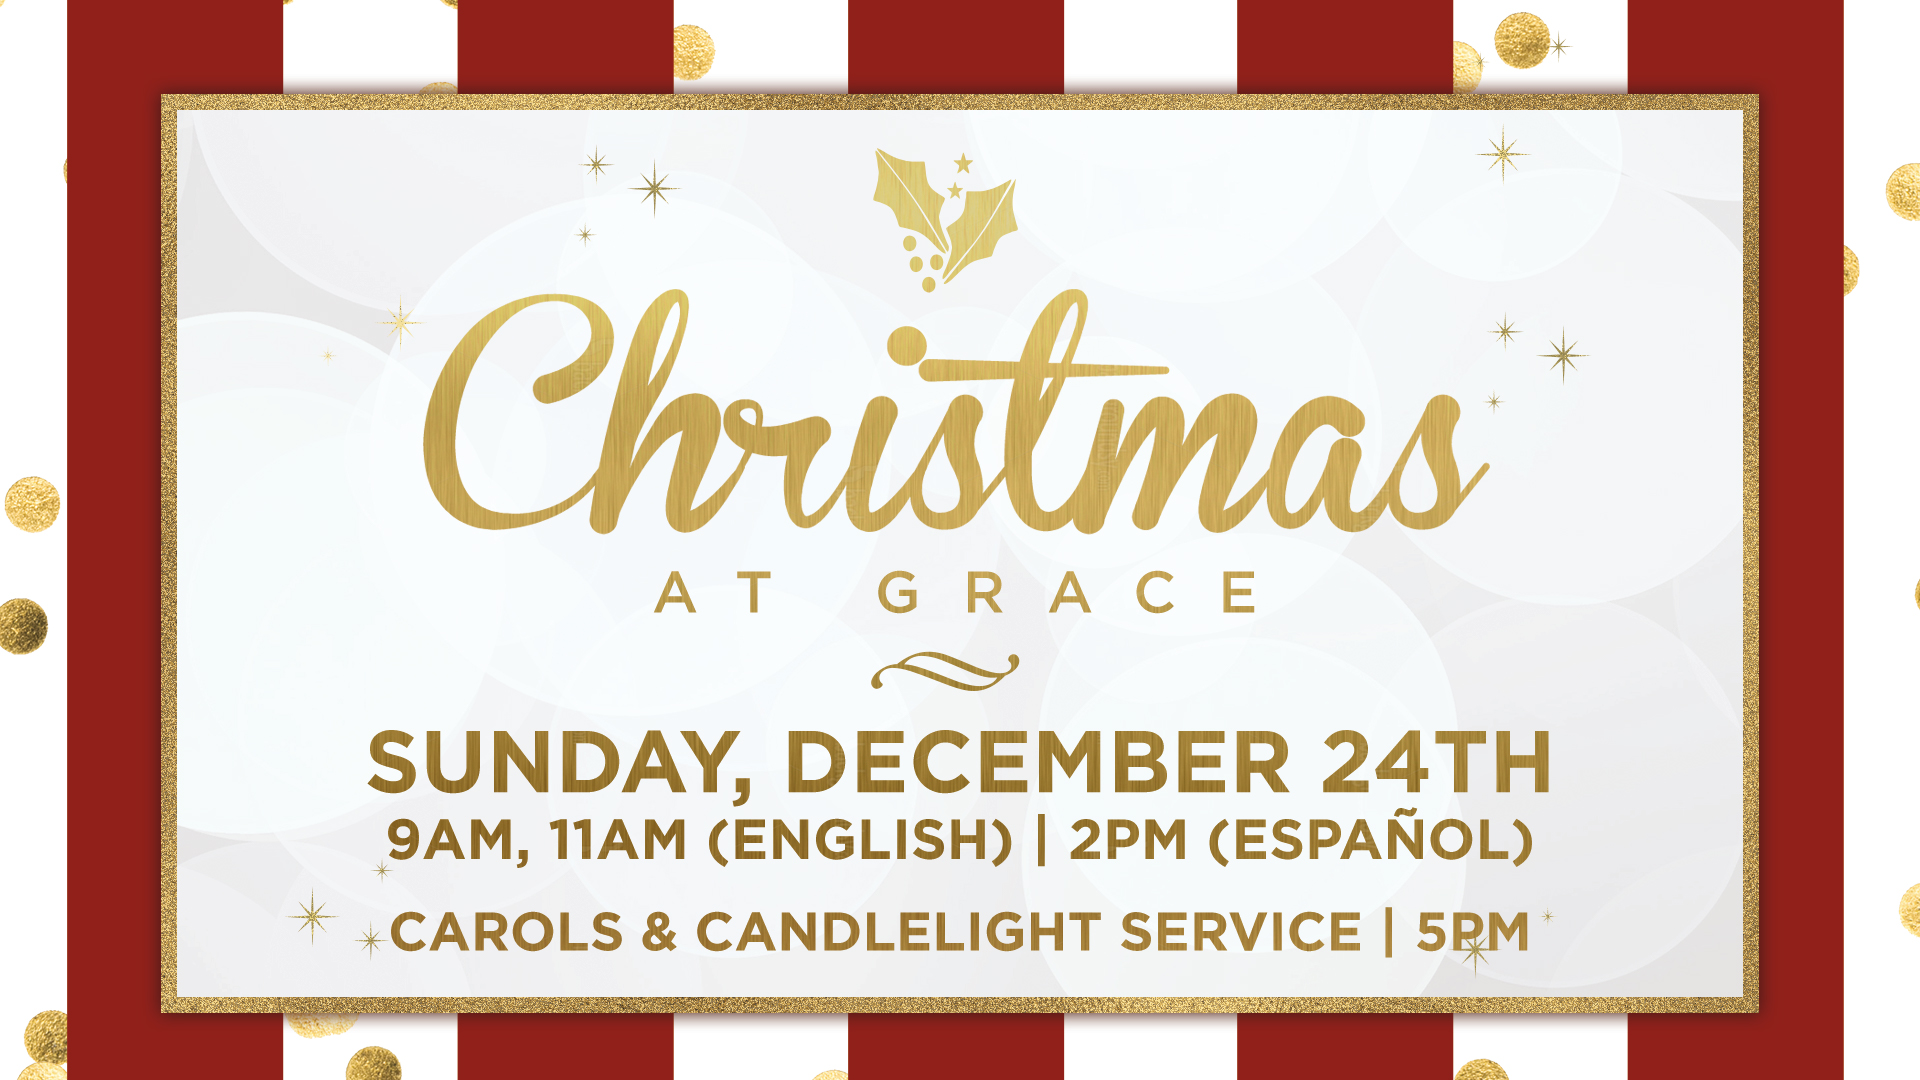 Christmas at Grace at The Woodlands